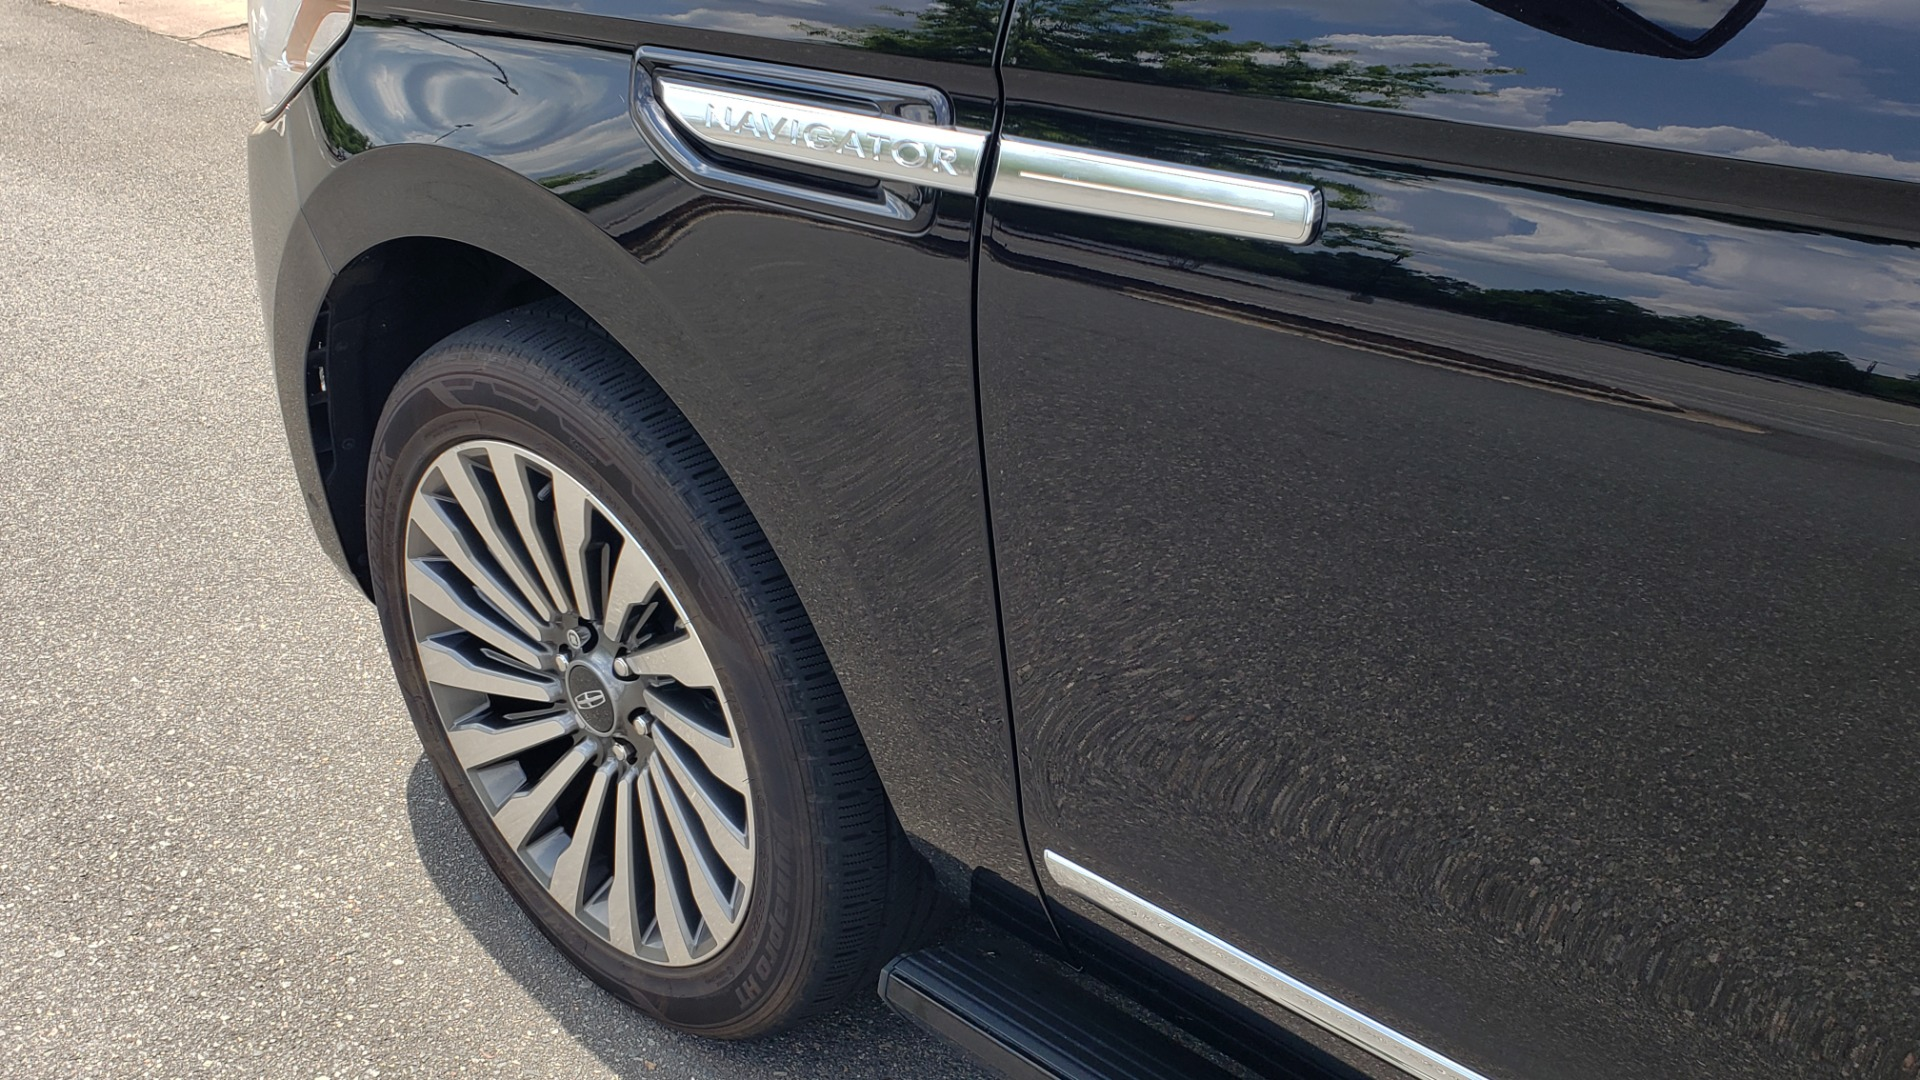 Used 2019 Lincoln NAVIGATOR RESERVE 4X4 / NAV / PANO-ROOF / REVEL ULTIMA AUDIO / 3-ROW / REARVIEW for sale $74,795 at Formula Imports in Charlotte NC 28227 10